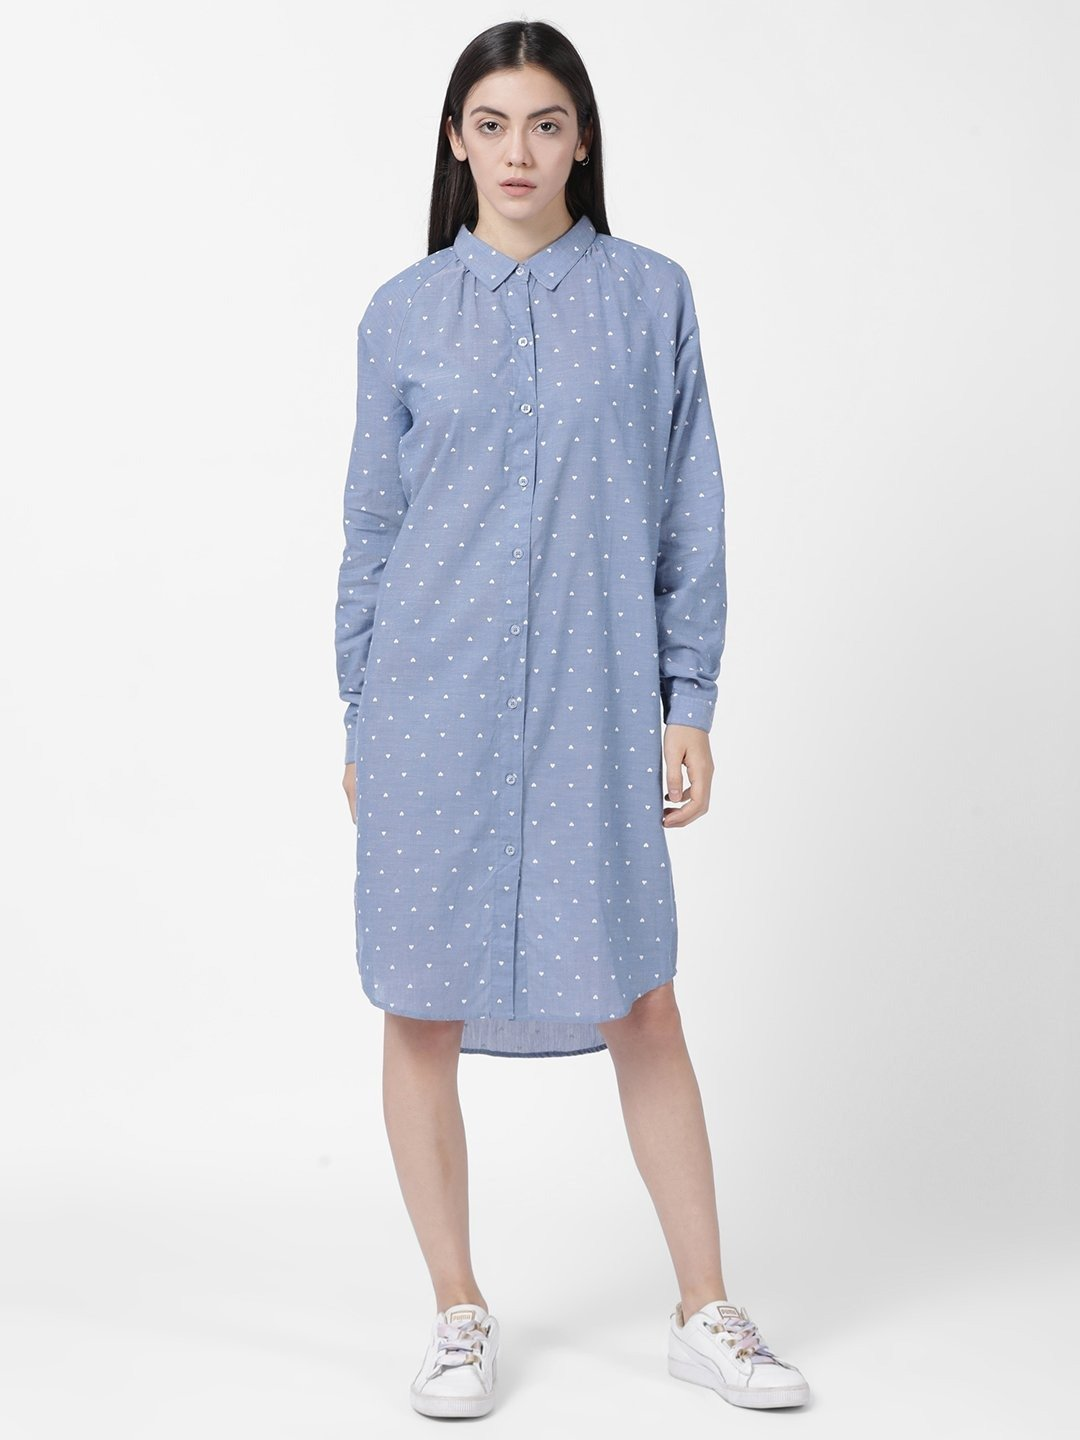 Blue Chambray Heart Print Shift Dress - Rossbelle